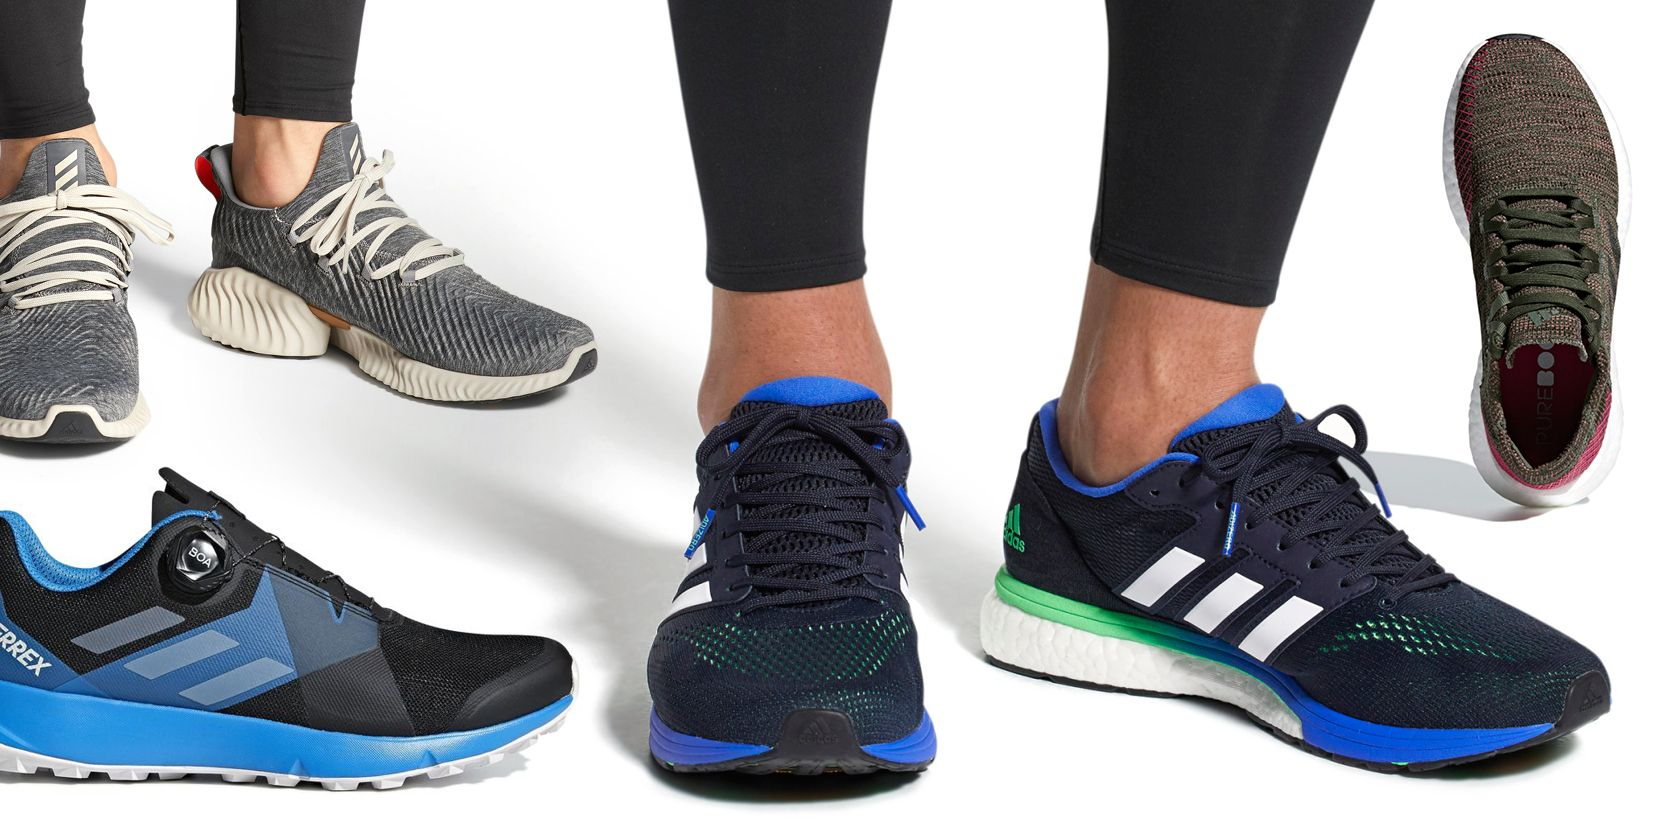 The 10 Best Running Shoes From Adidas 0e6000cfb